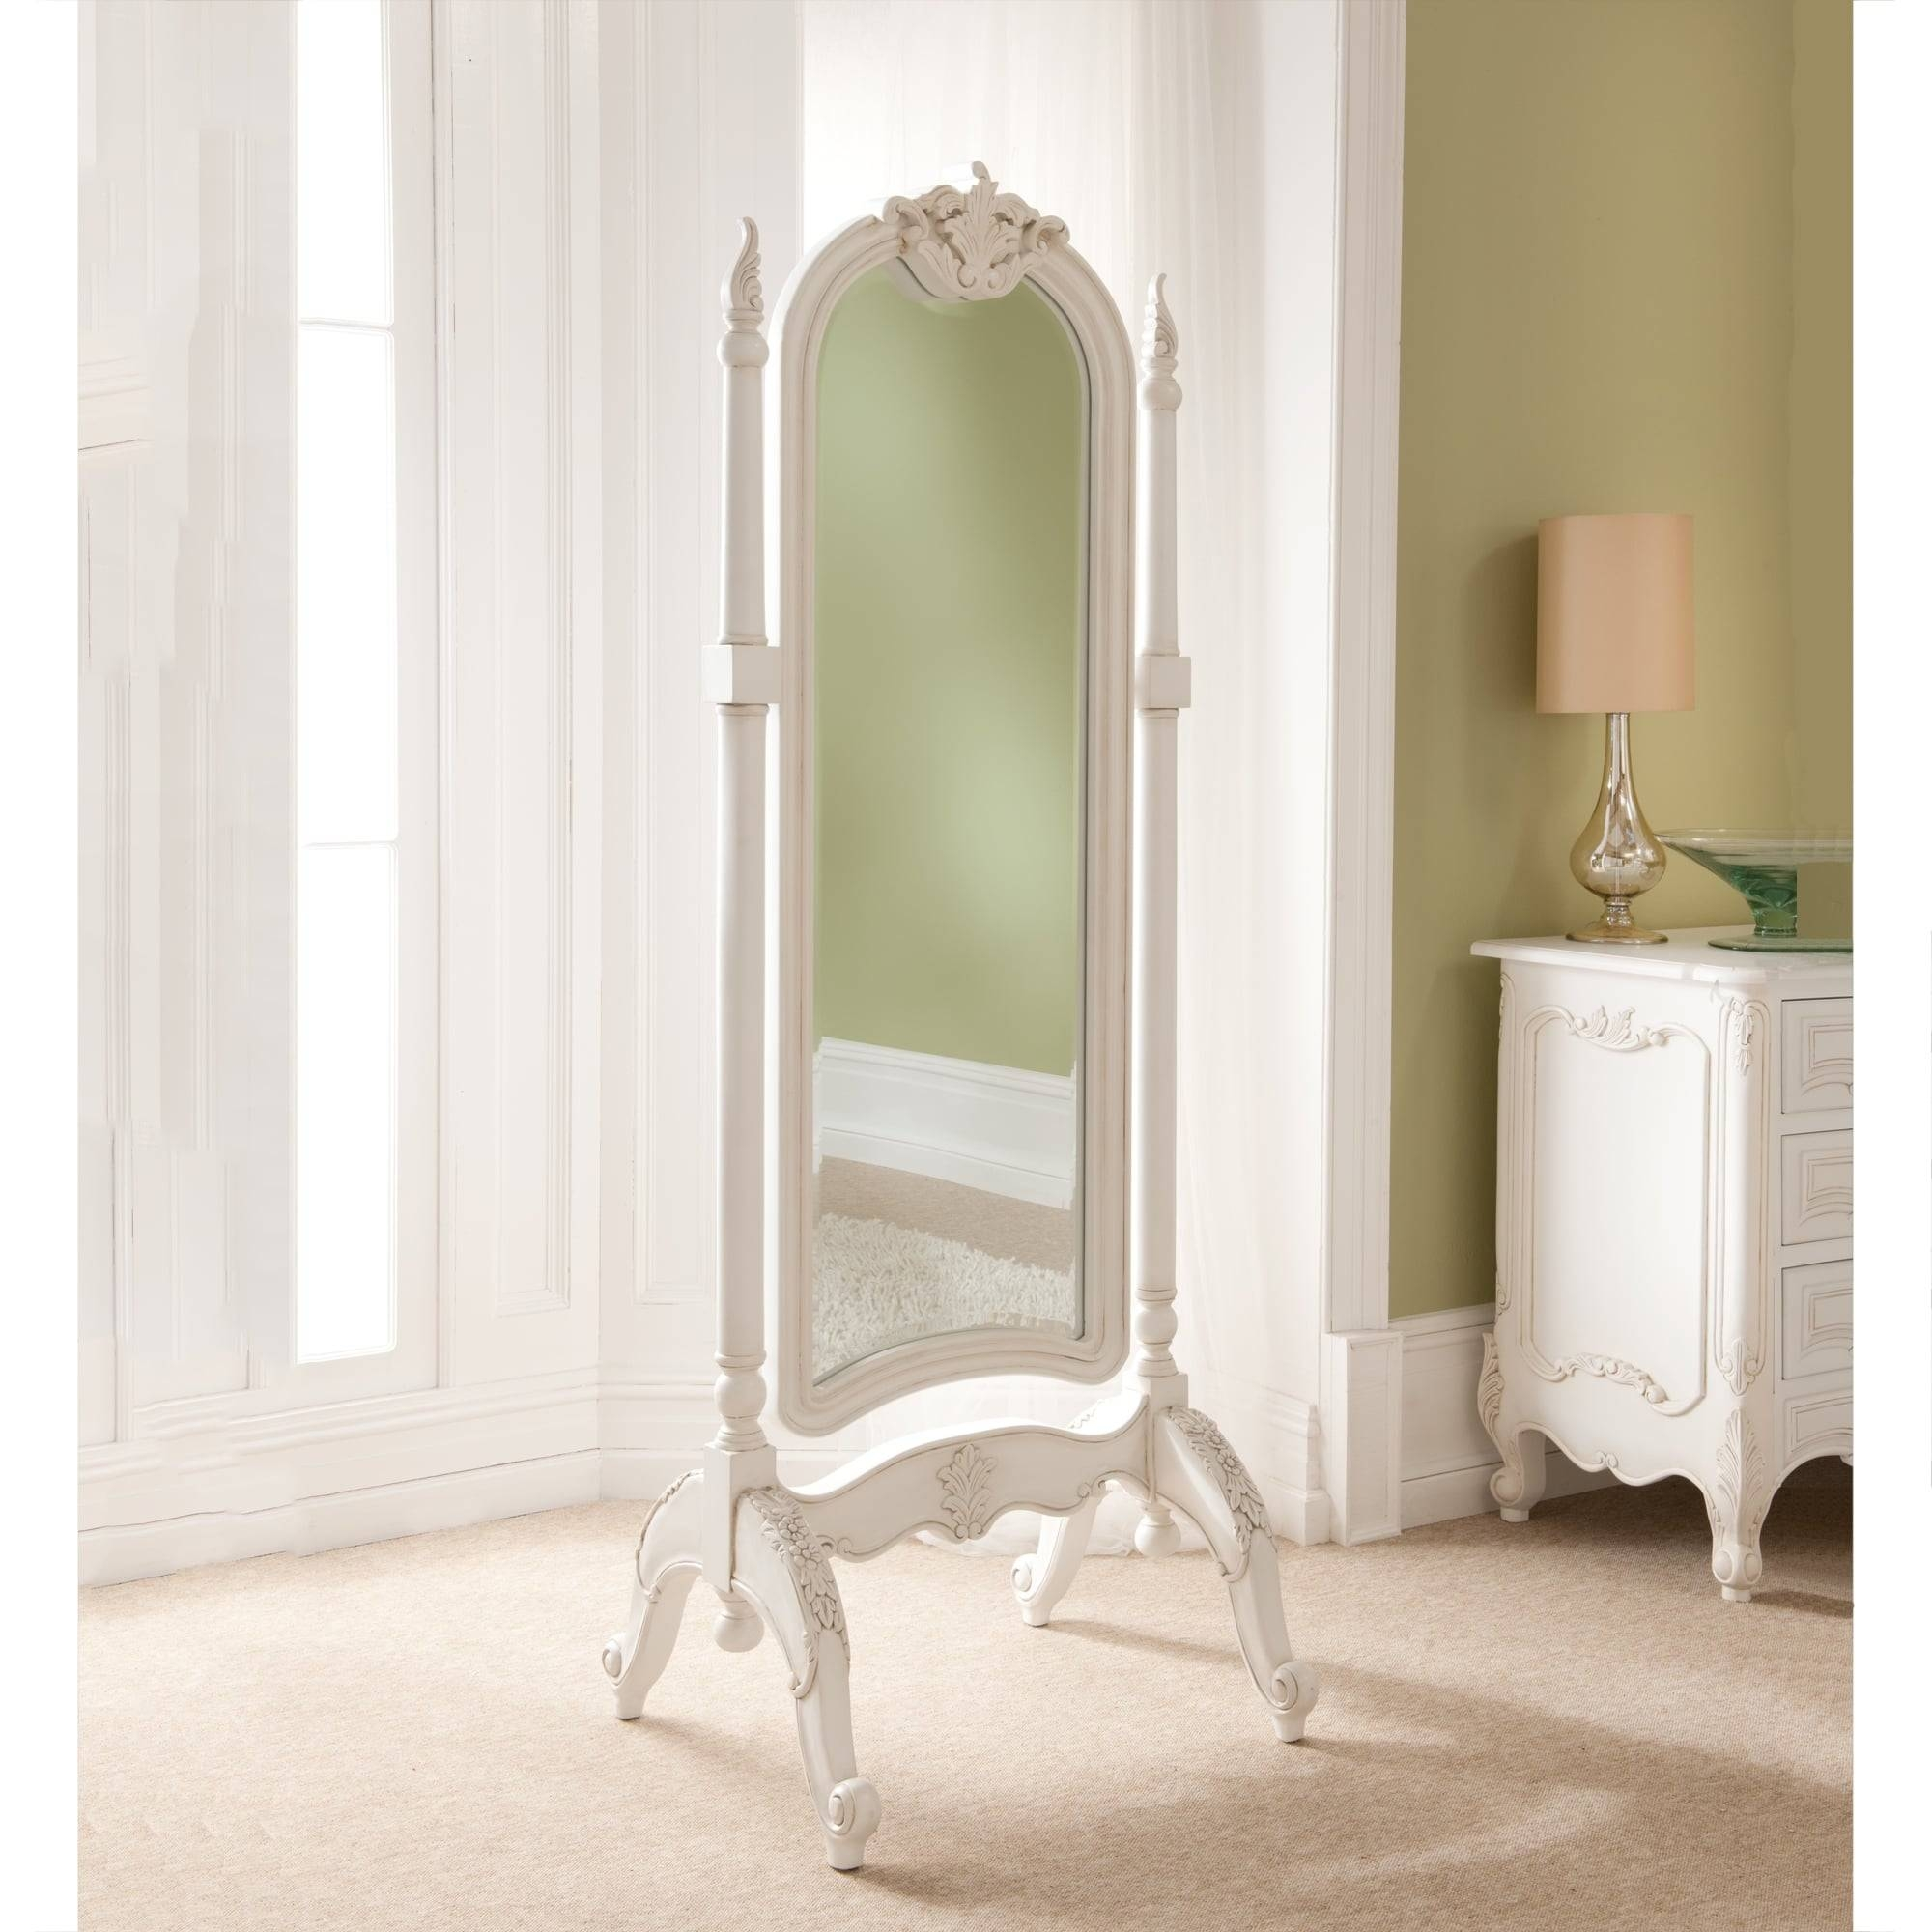 Cheval Mirrors | French Style Mirrors | Shabby Chic for French Chic Mirrors (Image 5 of 15)